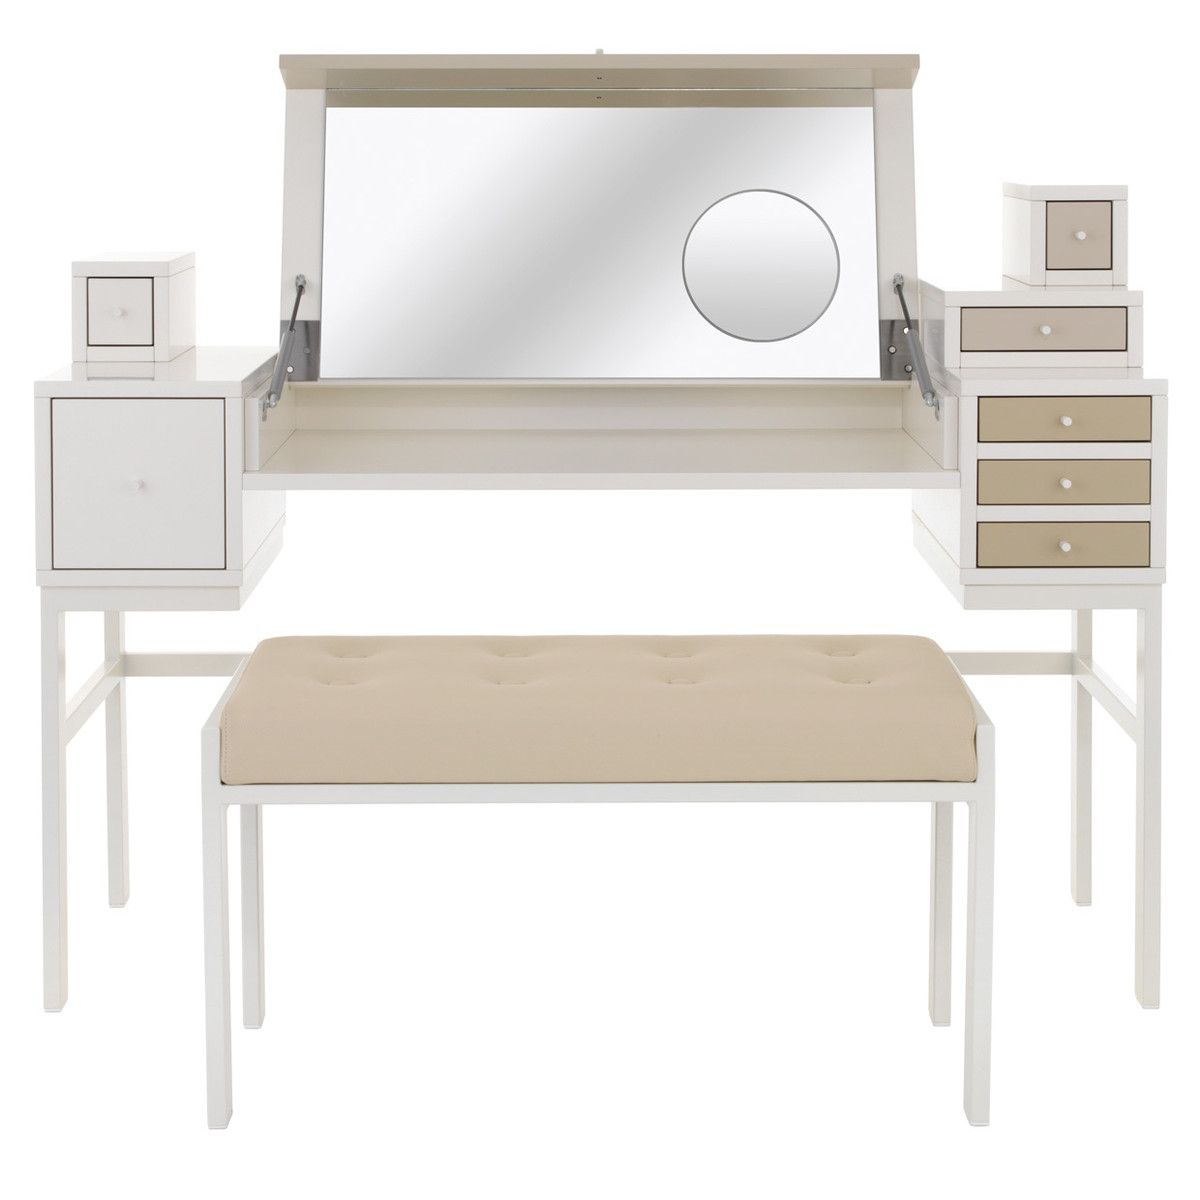 Fab Möbel Eu.fab.com | Collect Make Up Table | Home | Pinterest